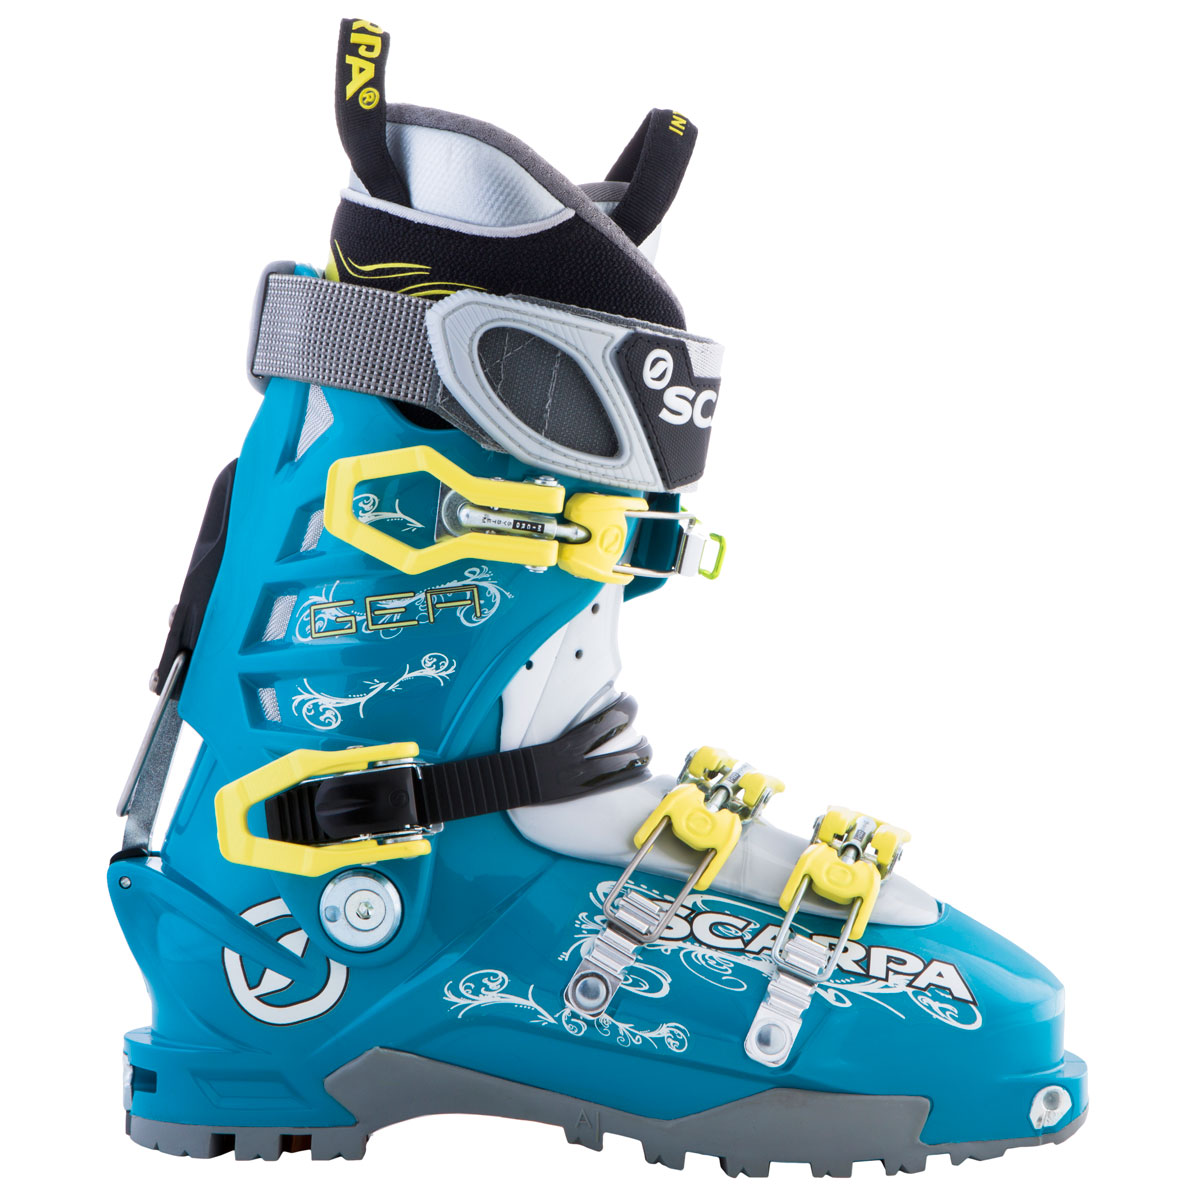 Scarpa Gea Lake blue-30